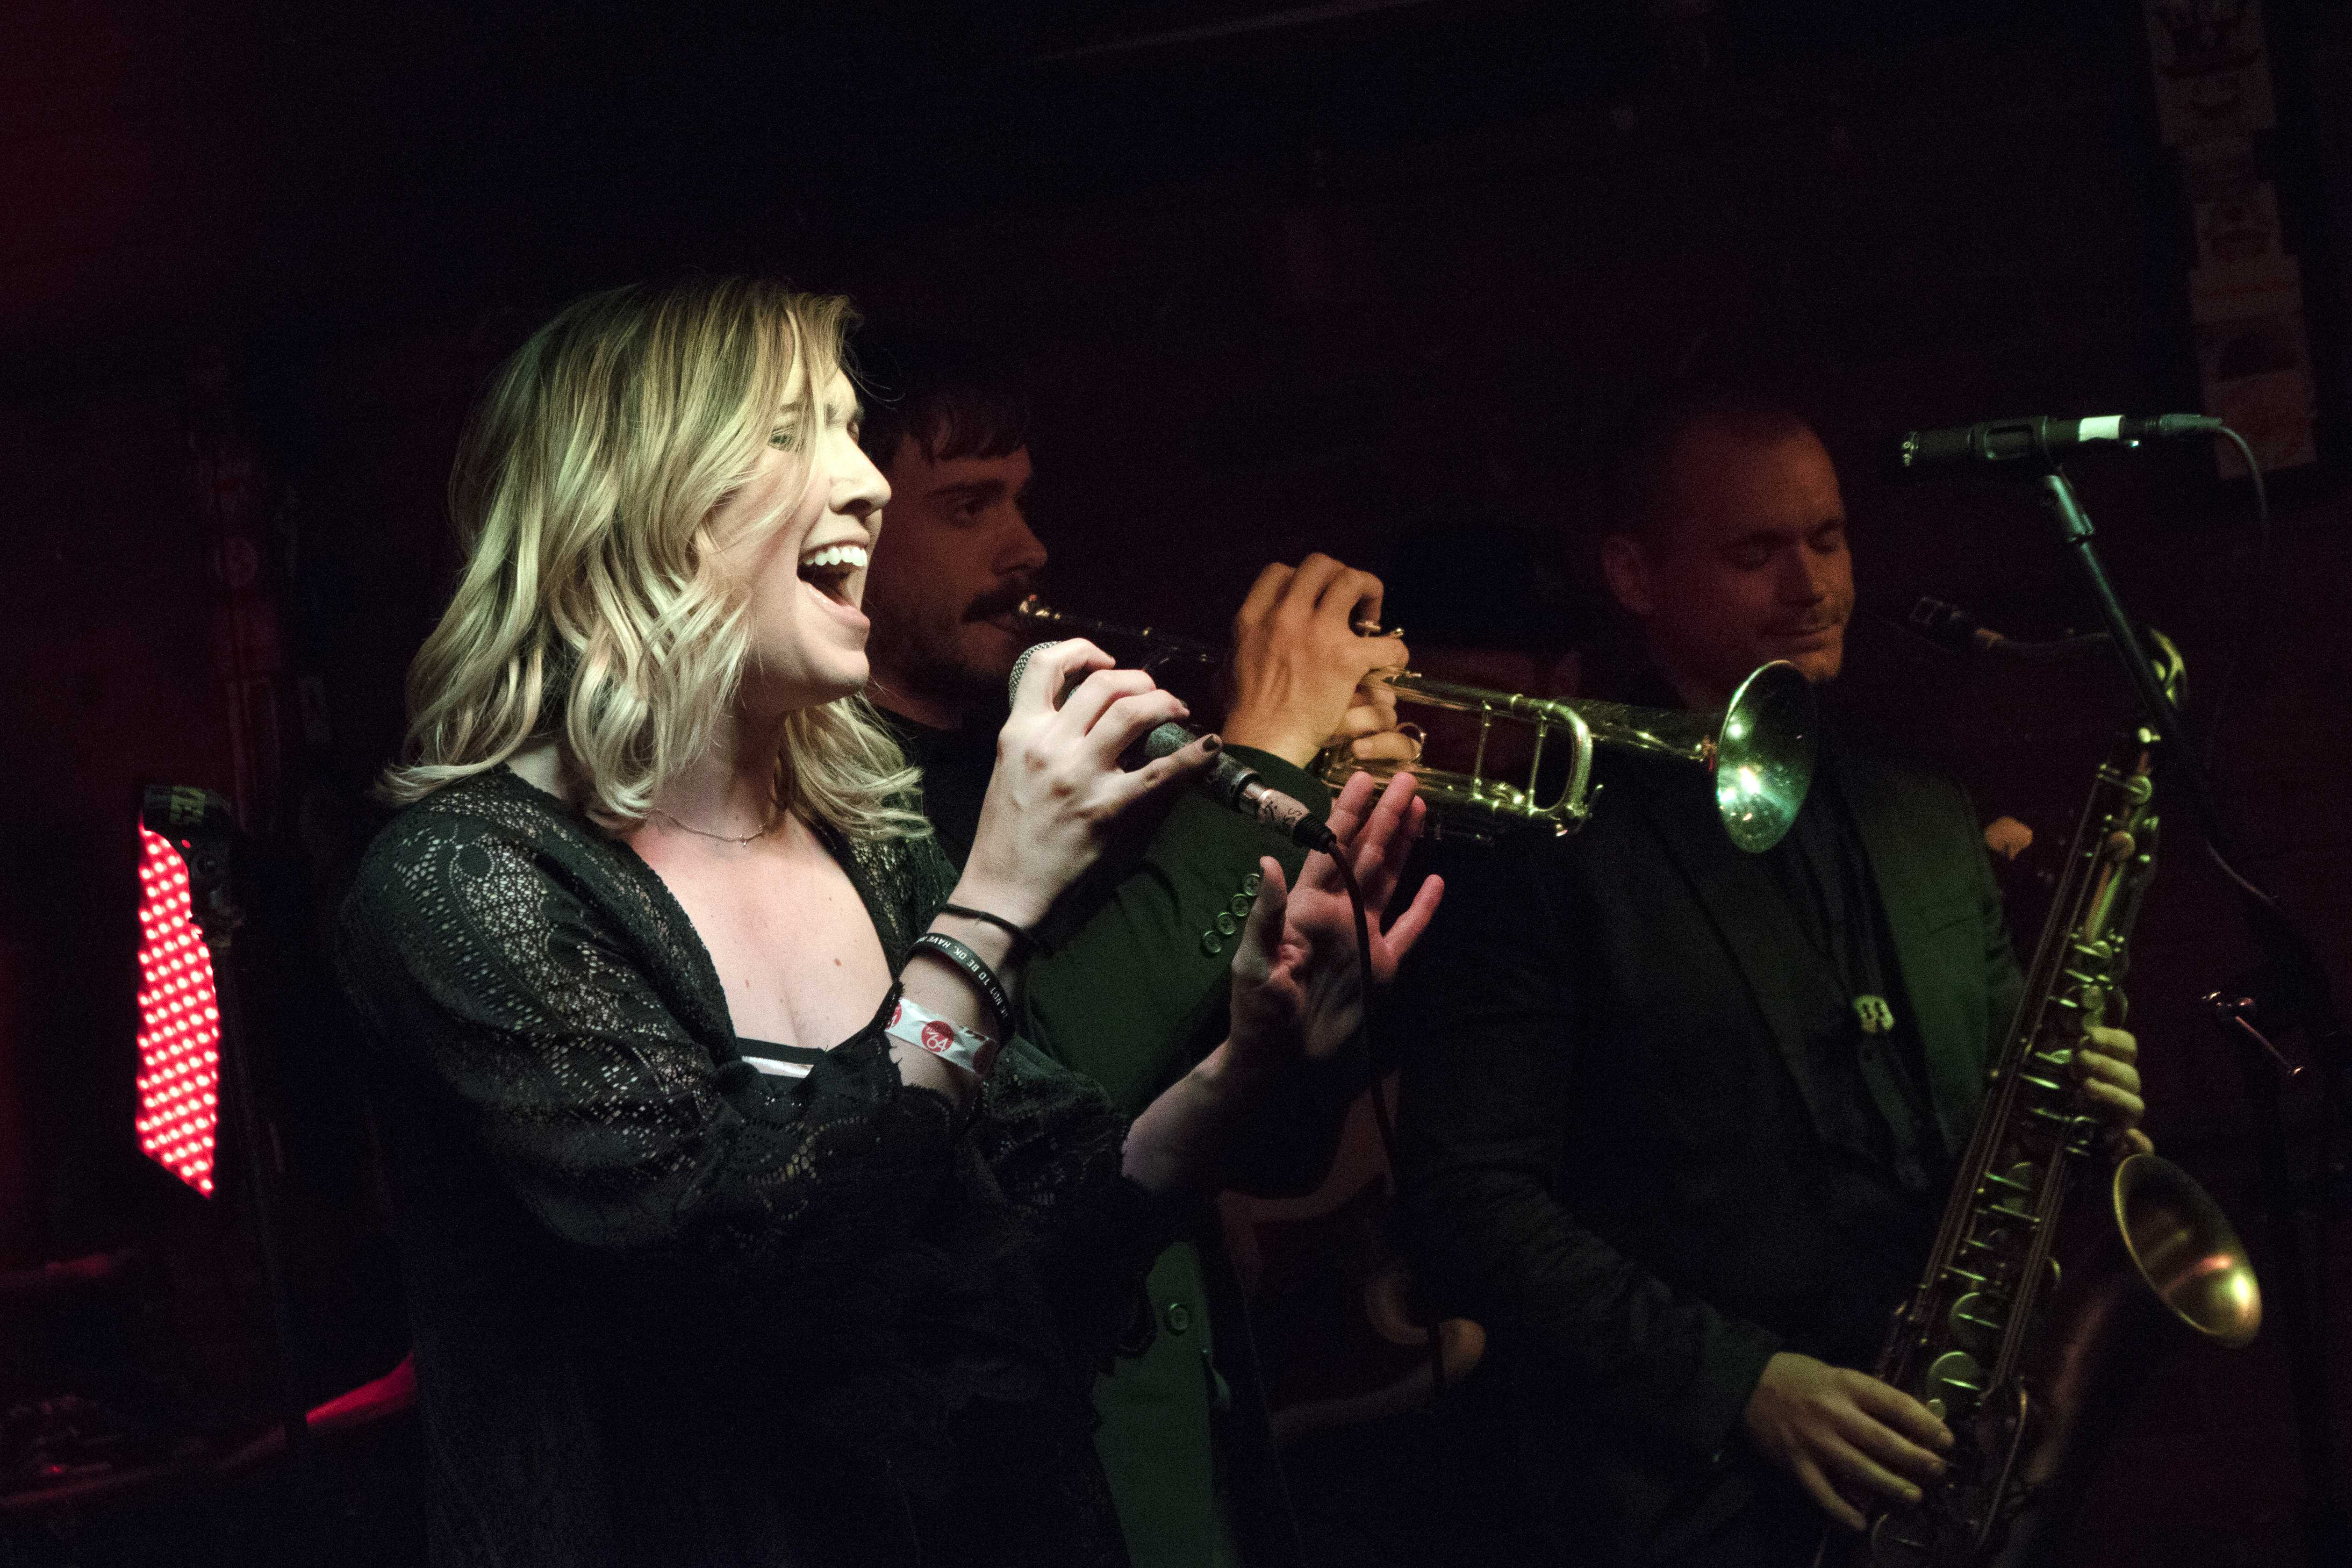 Stefanie Berecz sings onstage. The Right Now is heading the Yacht Club on Saturday, May 5, 2018. (Yue Zhang/The Daily Iowan)